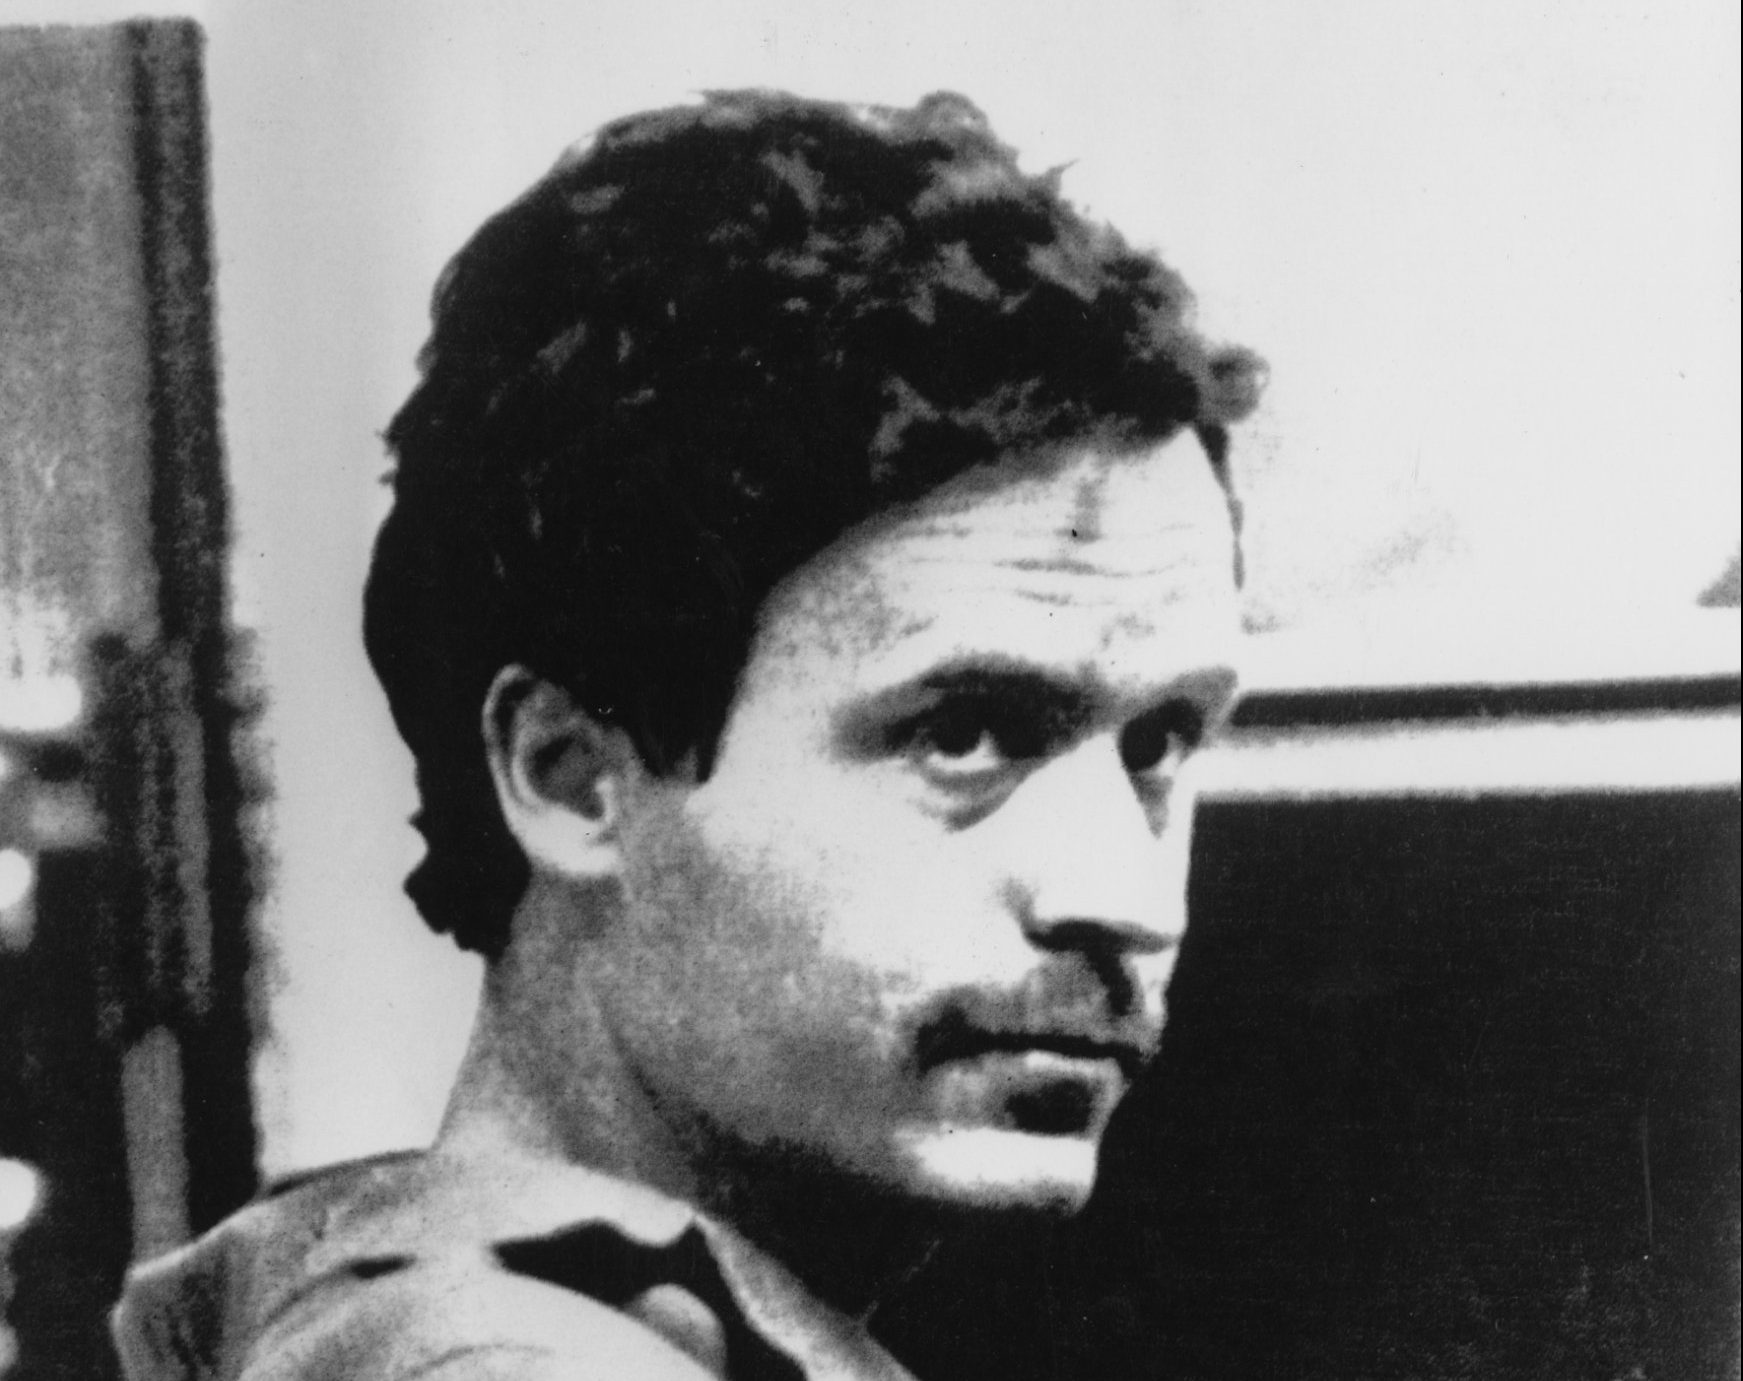 American serial killer Ted Bundy (1946 - 1989) at the Leon County sheriff's office in Florida, shortly after after his arrest on a charge of theft, 19th February 1978. He later confessed to over thirty murders and was executed in 1989. (Photo by Donn Dughi/Bride Lane Library/Popperfoto/Getty Images)